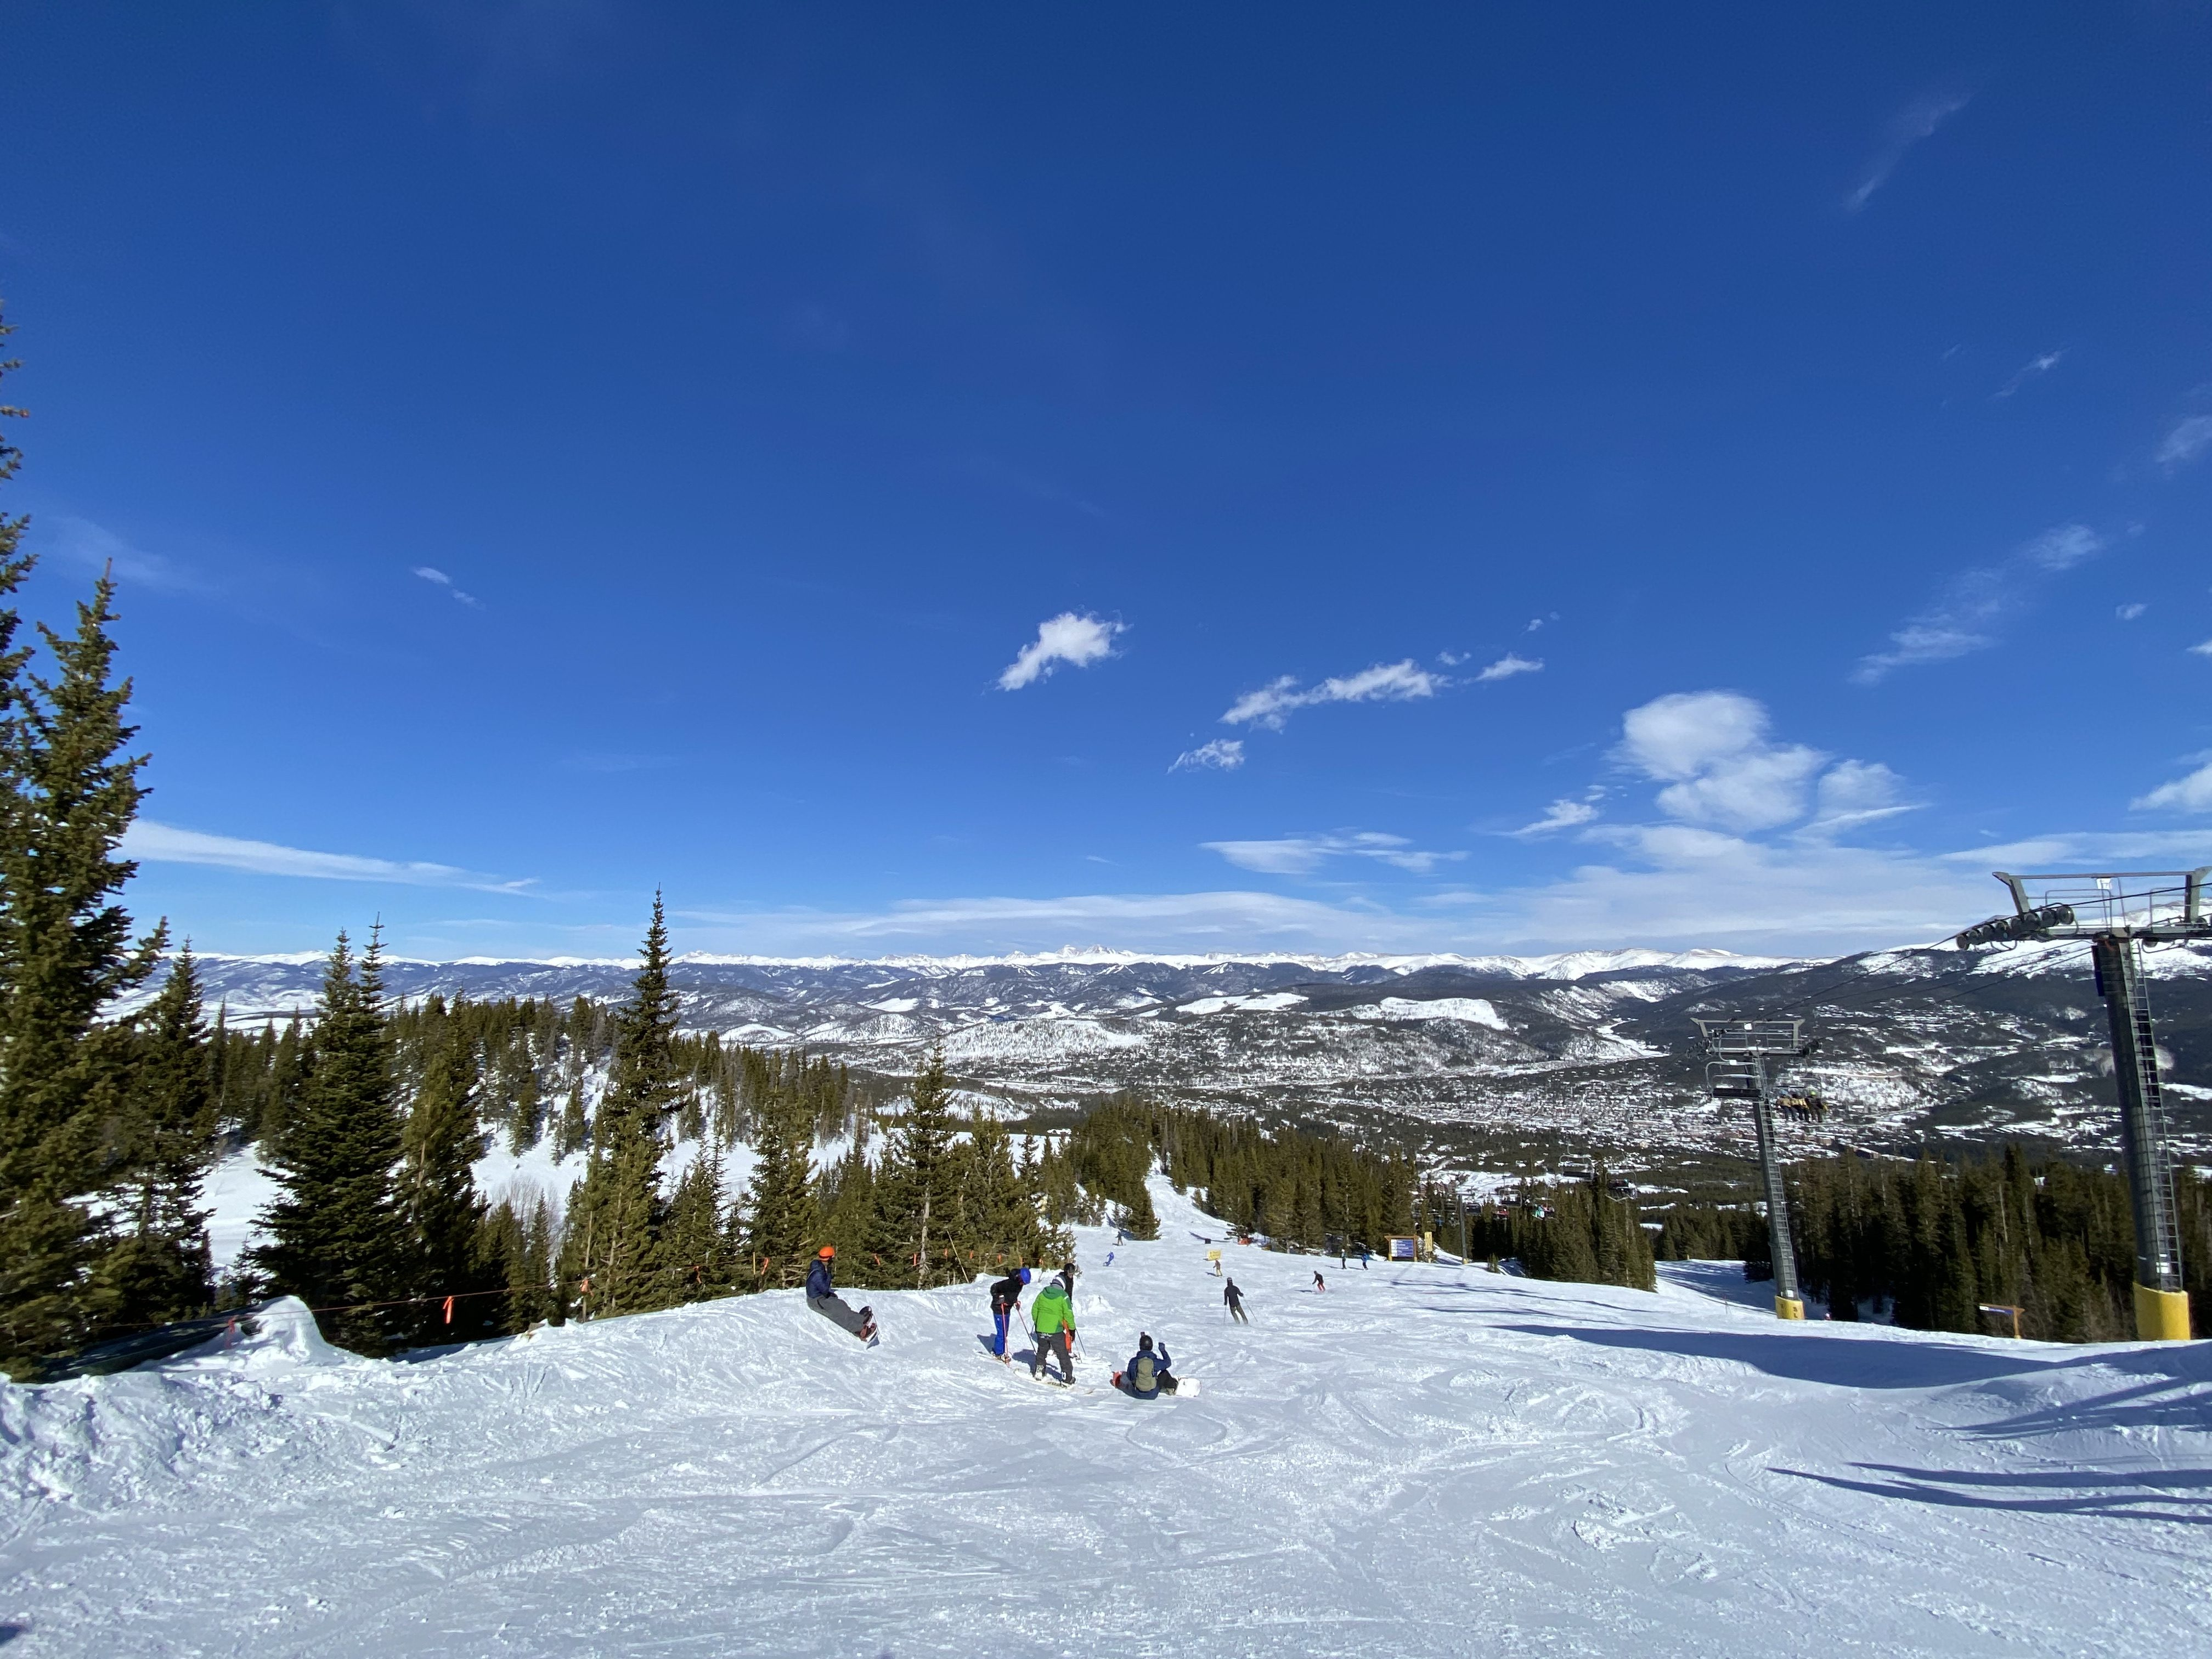 Last day on the slopes in Breck